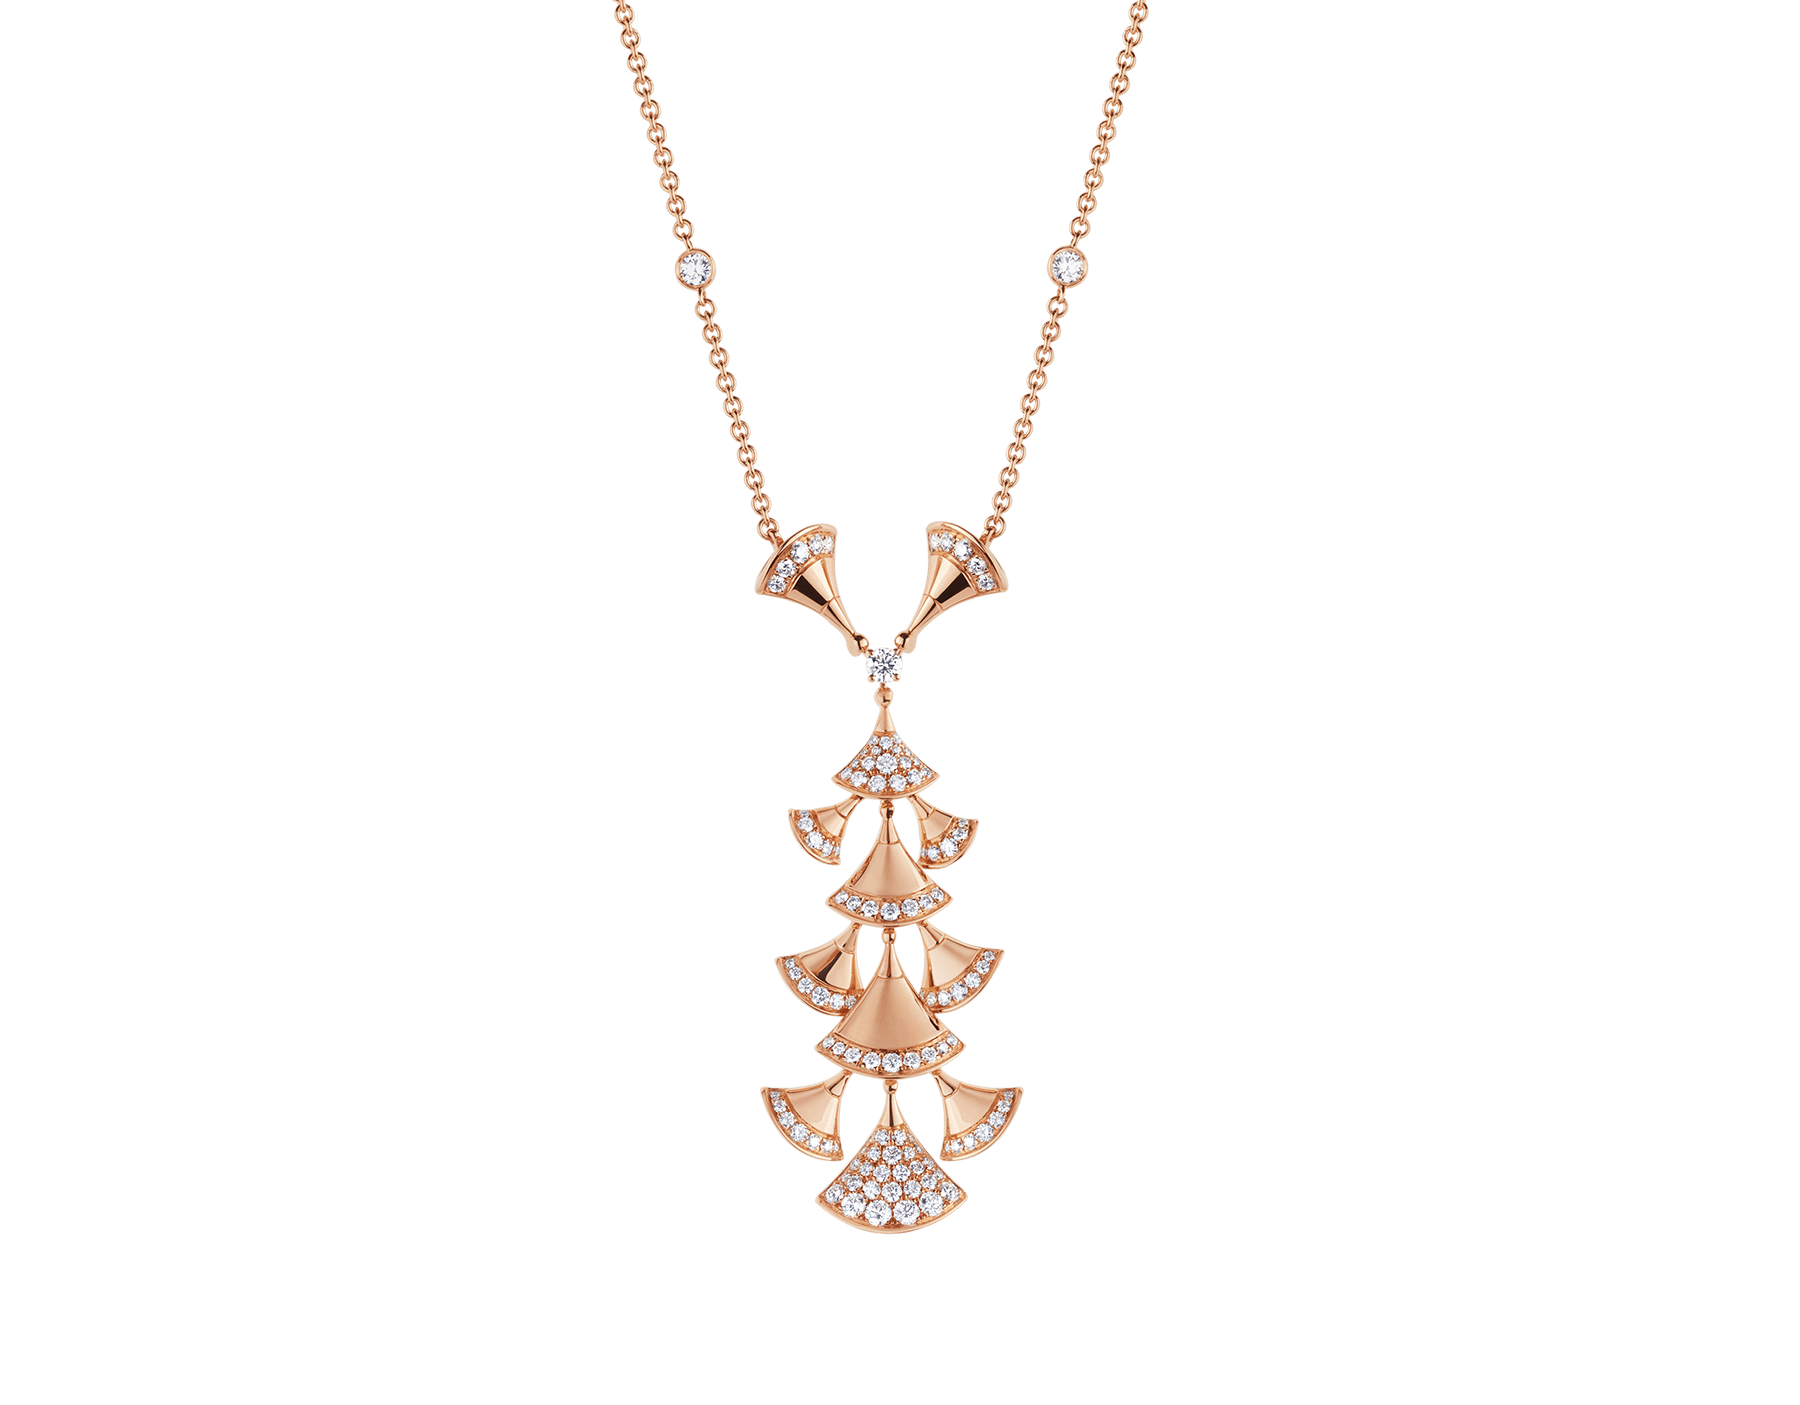 DIVAS' DREAM necklace in 18 kt rose gold set with diamonds and pavé diamonds. 352607 image 1